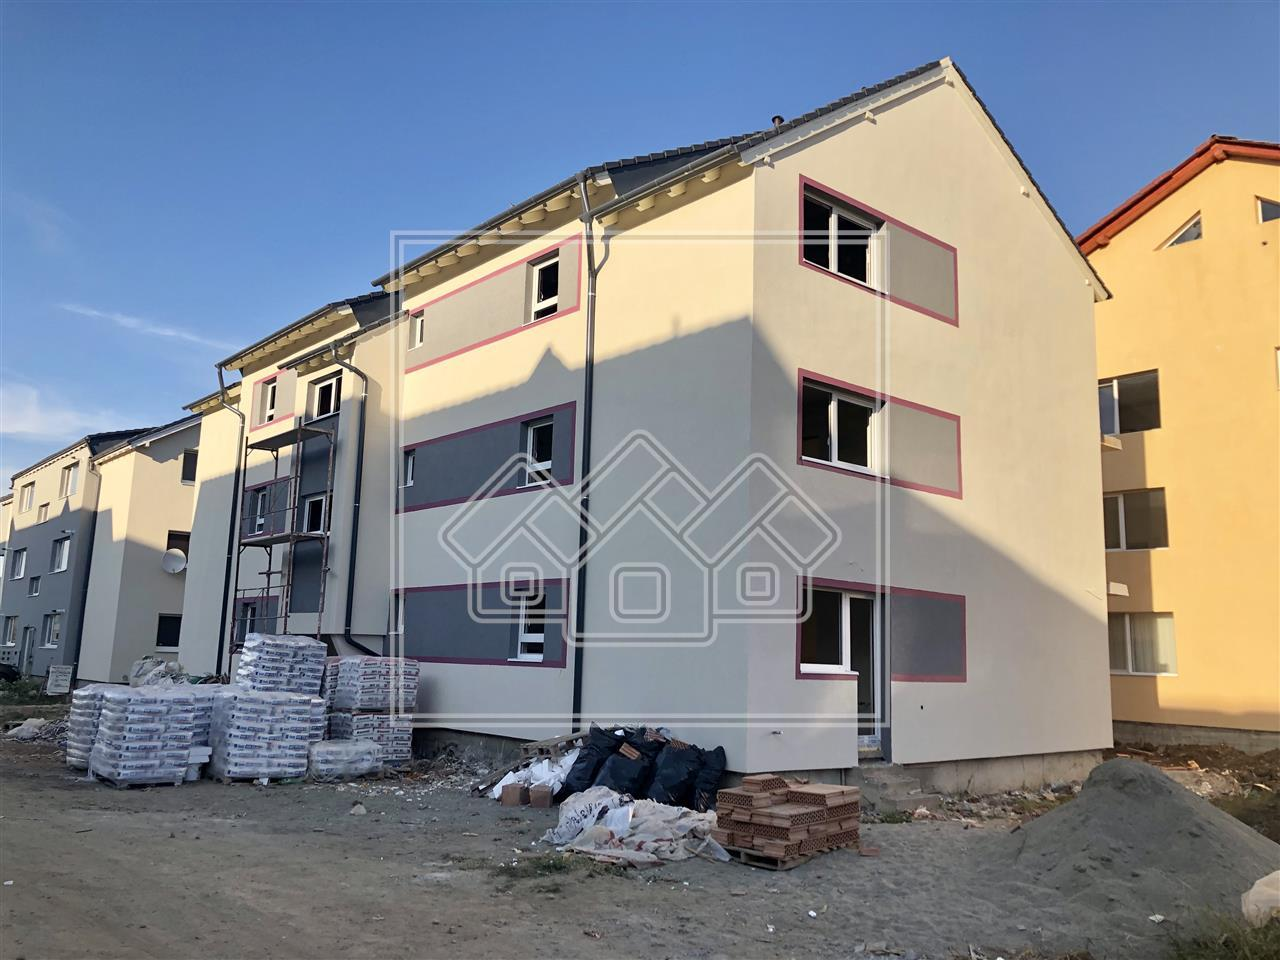 3-room apartment for sale in Sibiu with a 42 sqm garden